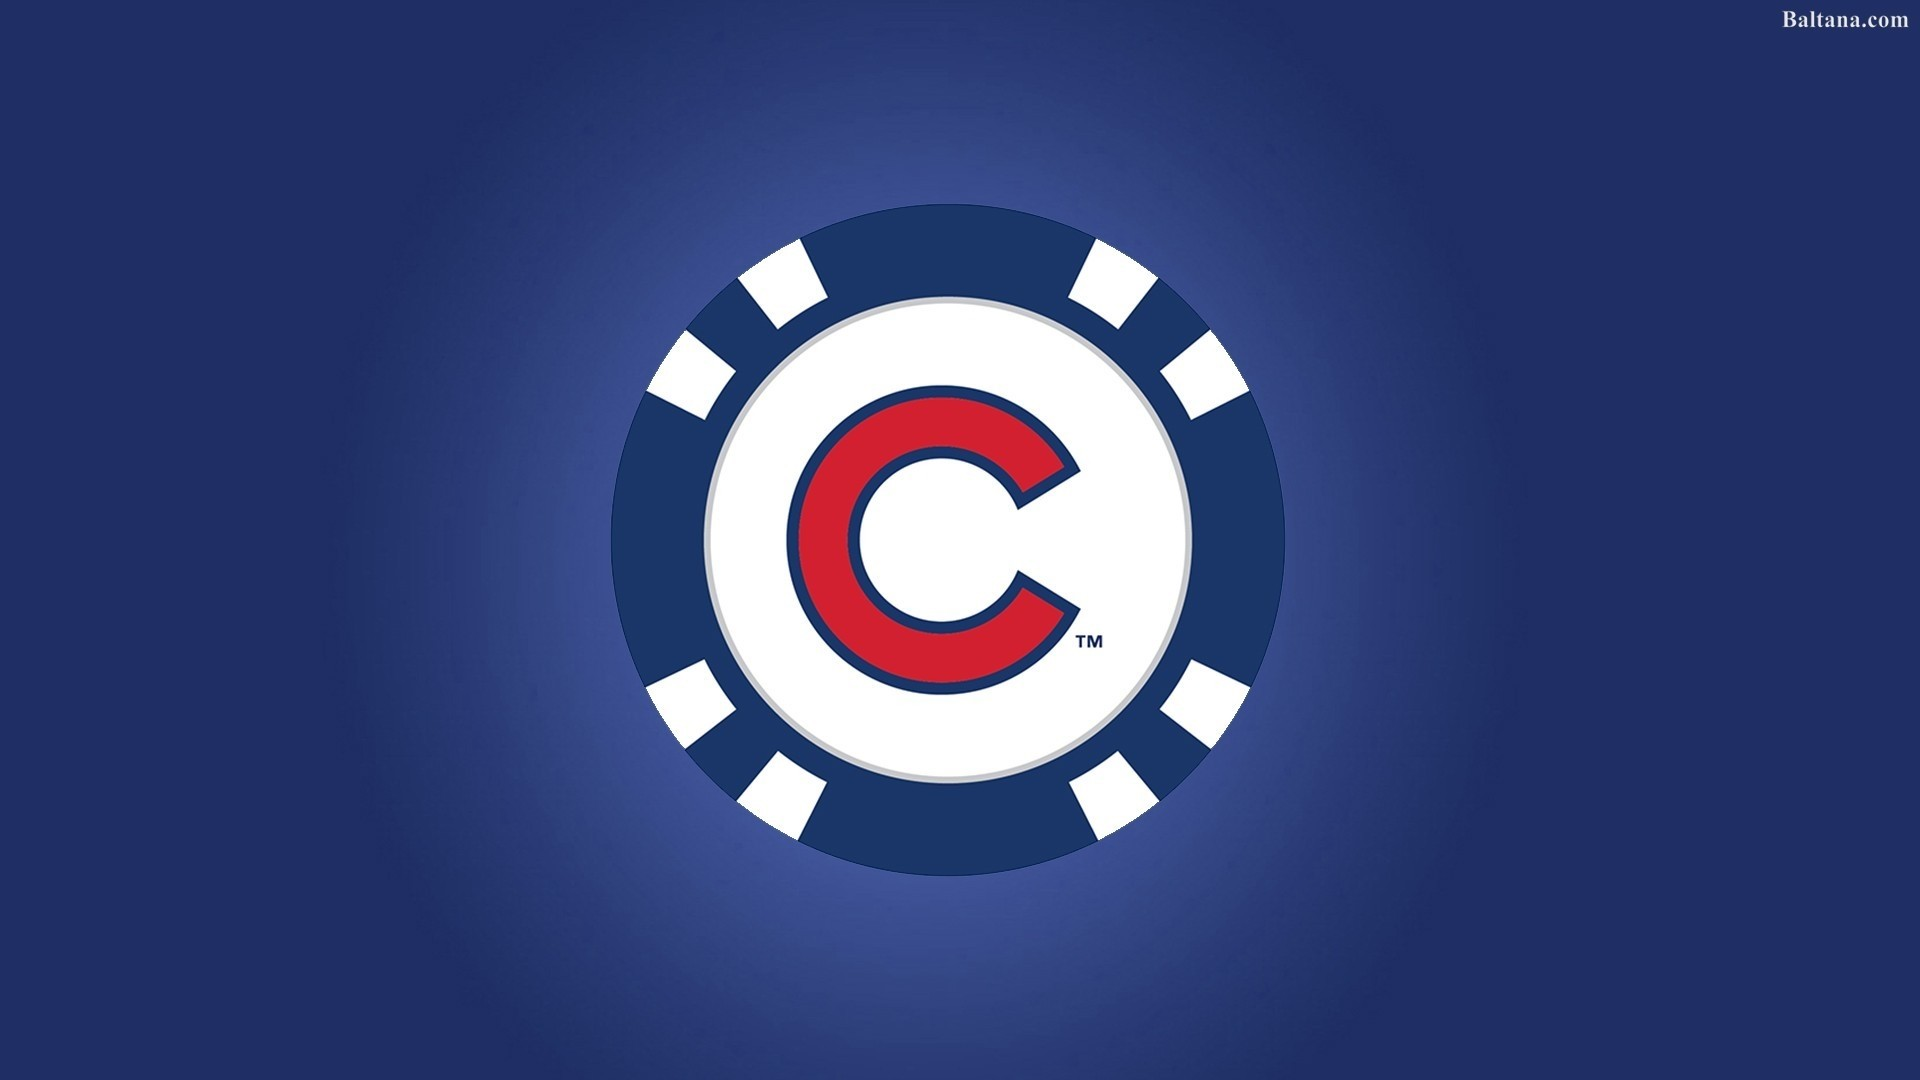 Cubs Free Wallpaper and Background